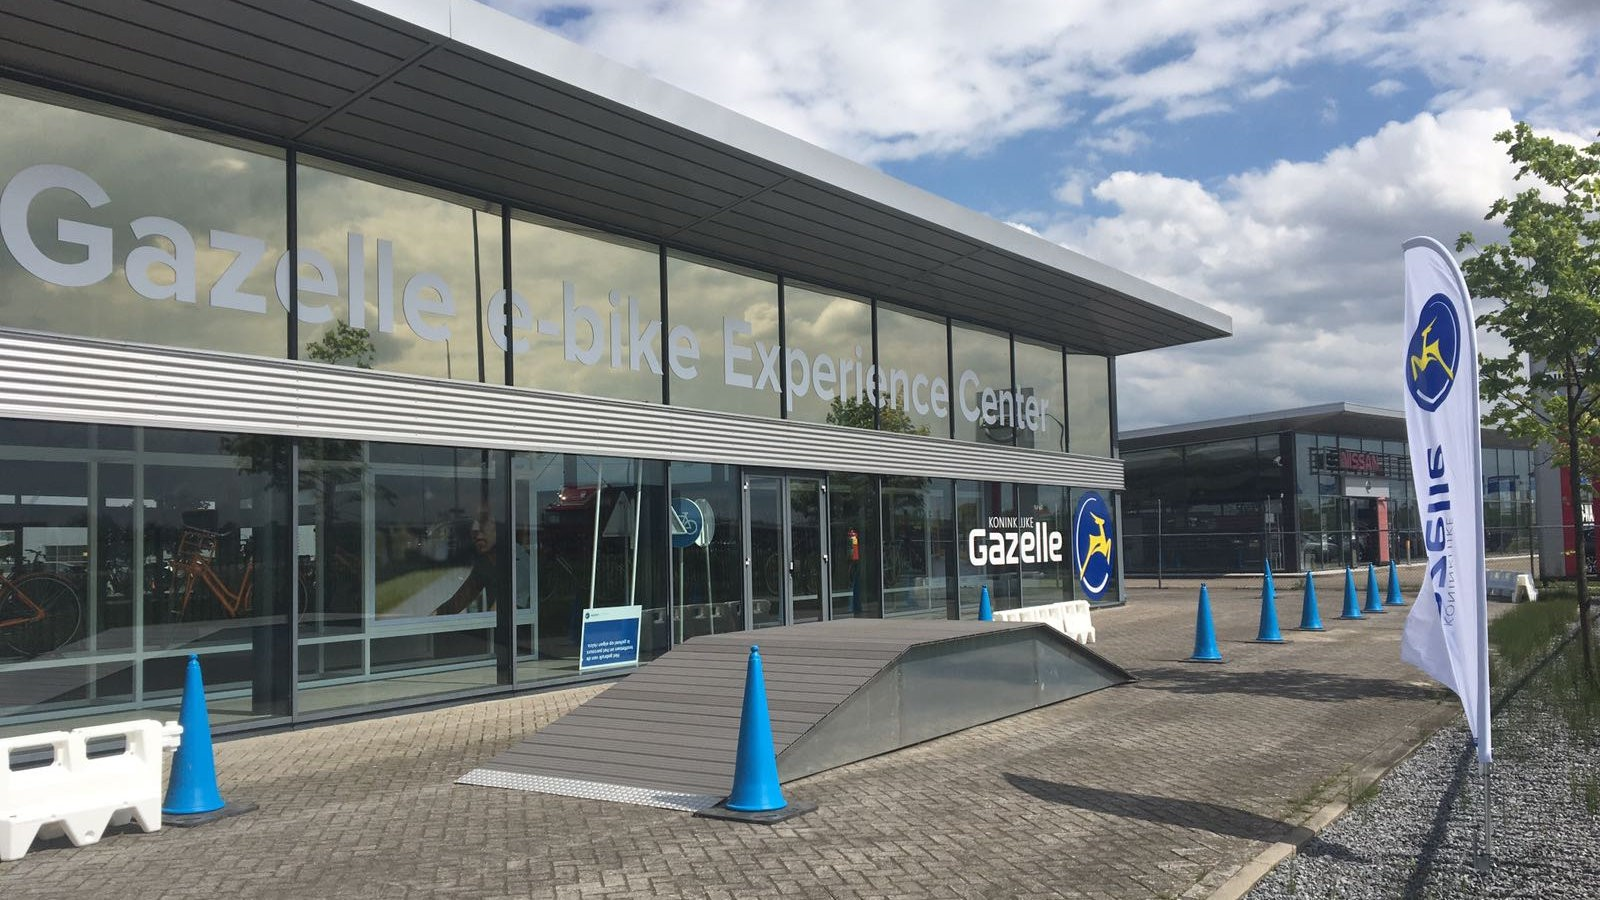 Gazelle Experience Center Waalwijk